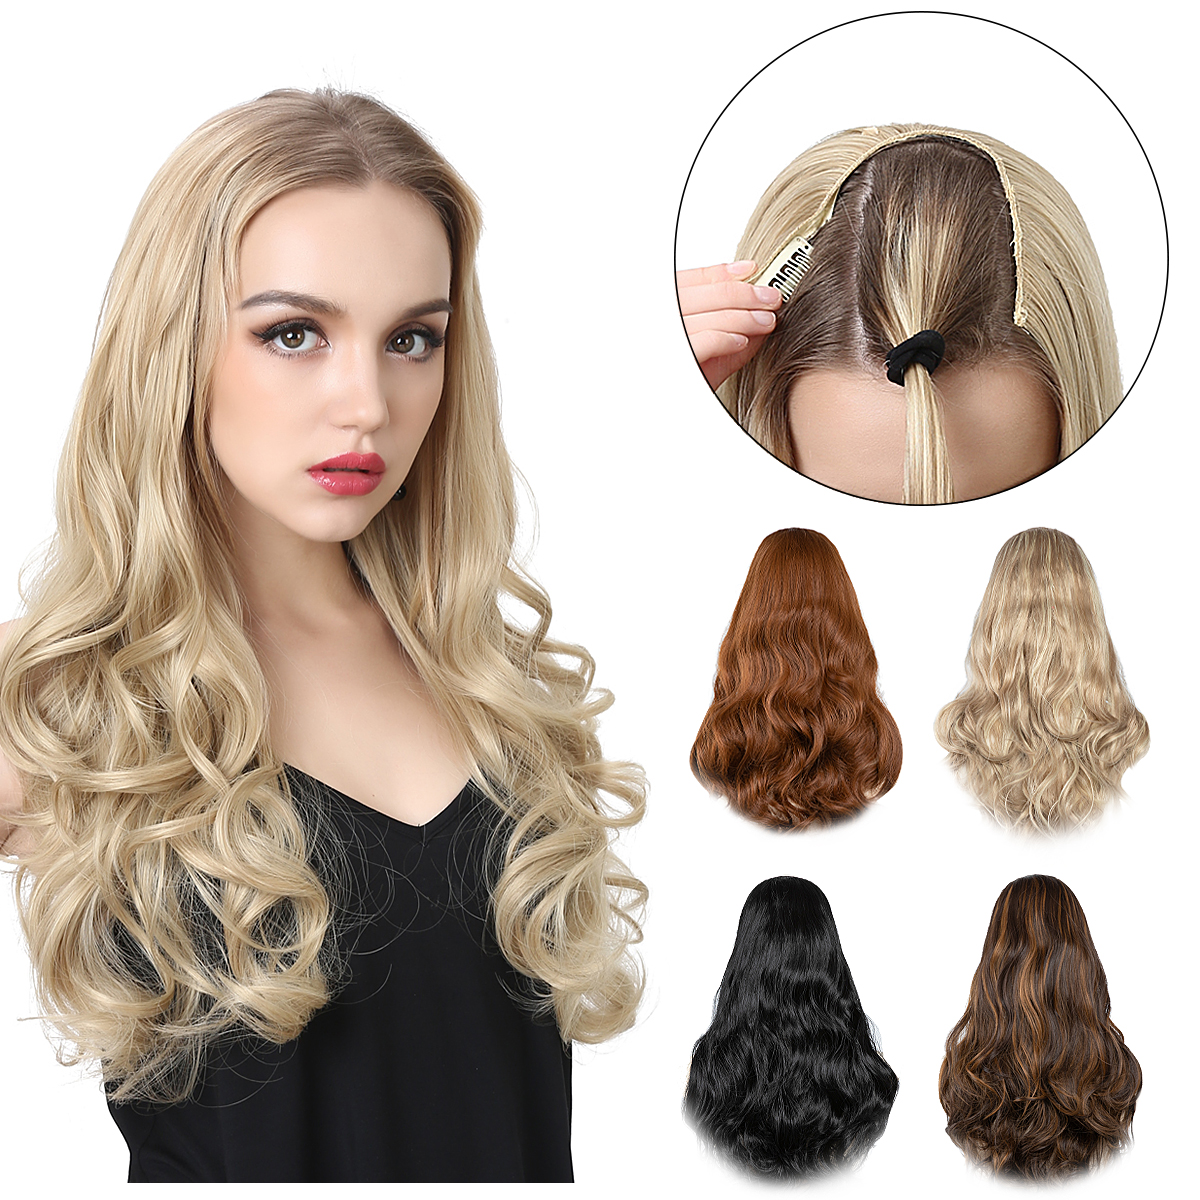 Wavy U Part Wigs for Women  Clip in Hair Extension Invisible Half False Synthetic Wig Long Blonde Black Natural Hairpieces